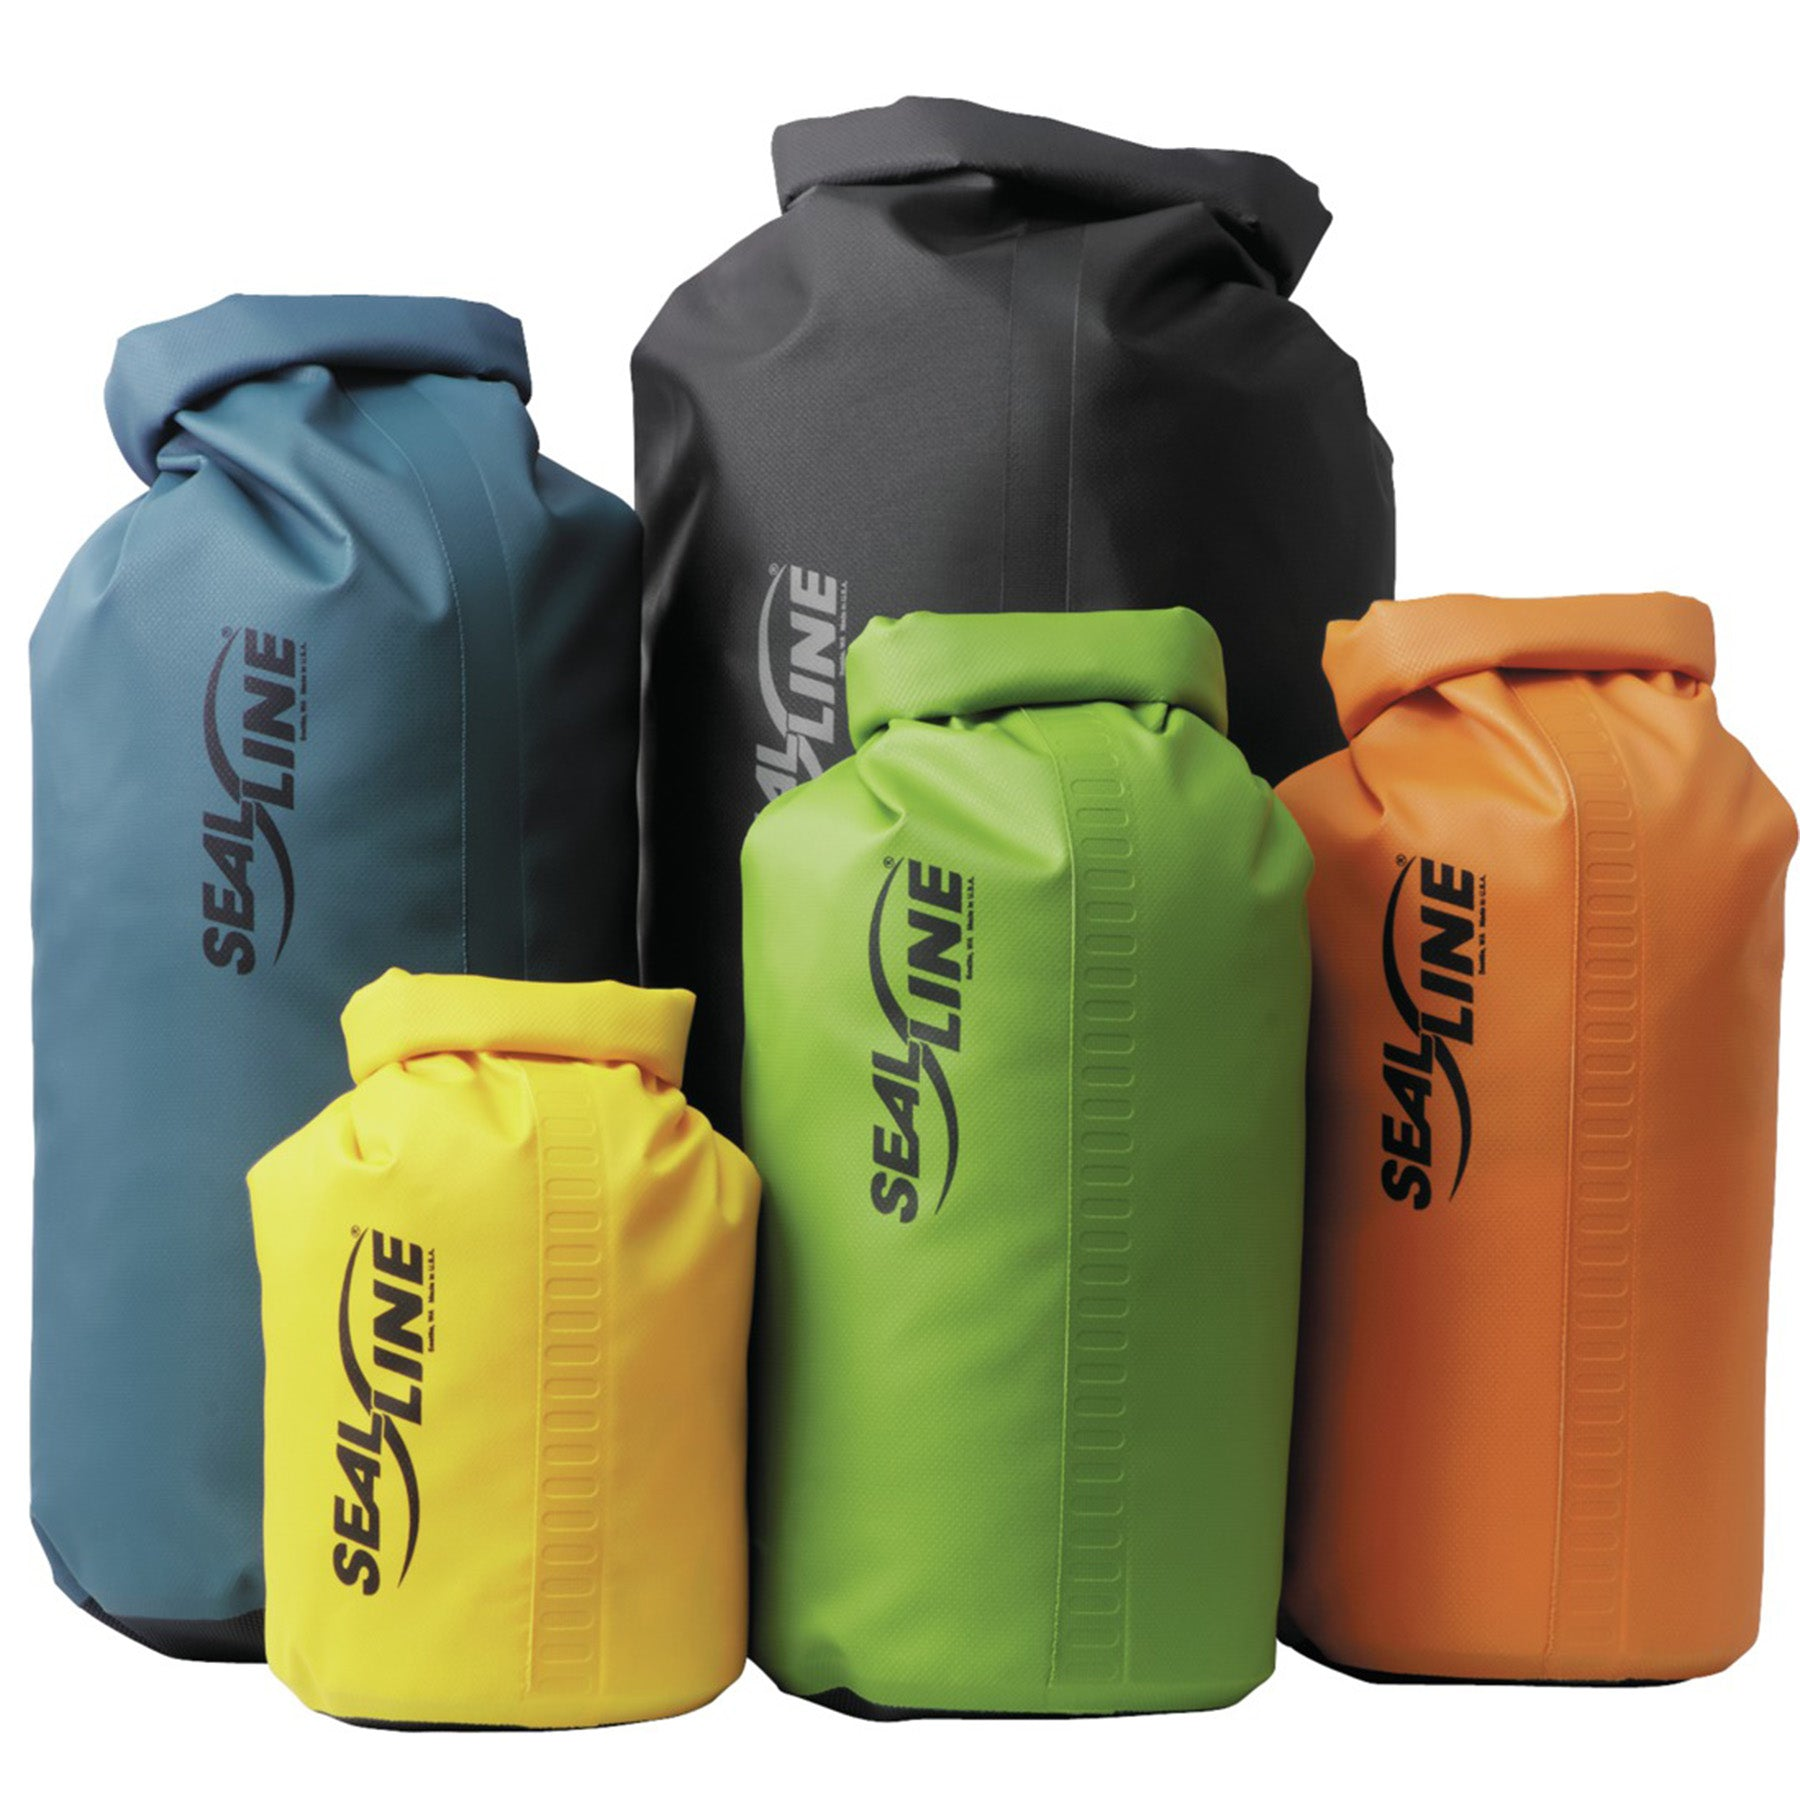 the collection of the sealline baja dry bags